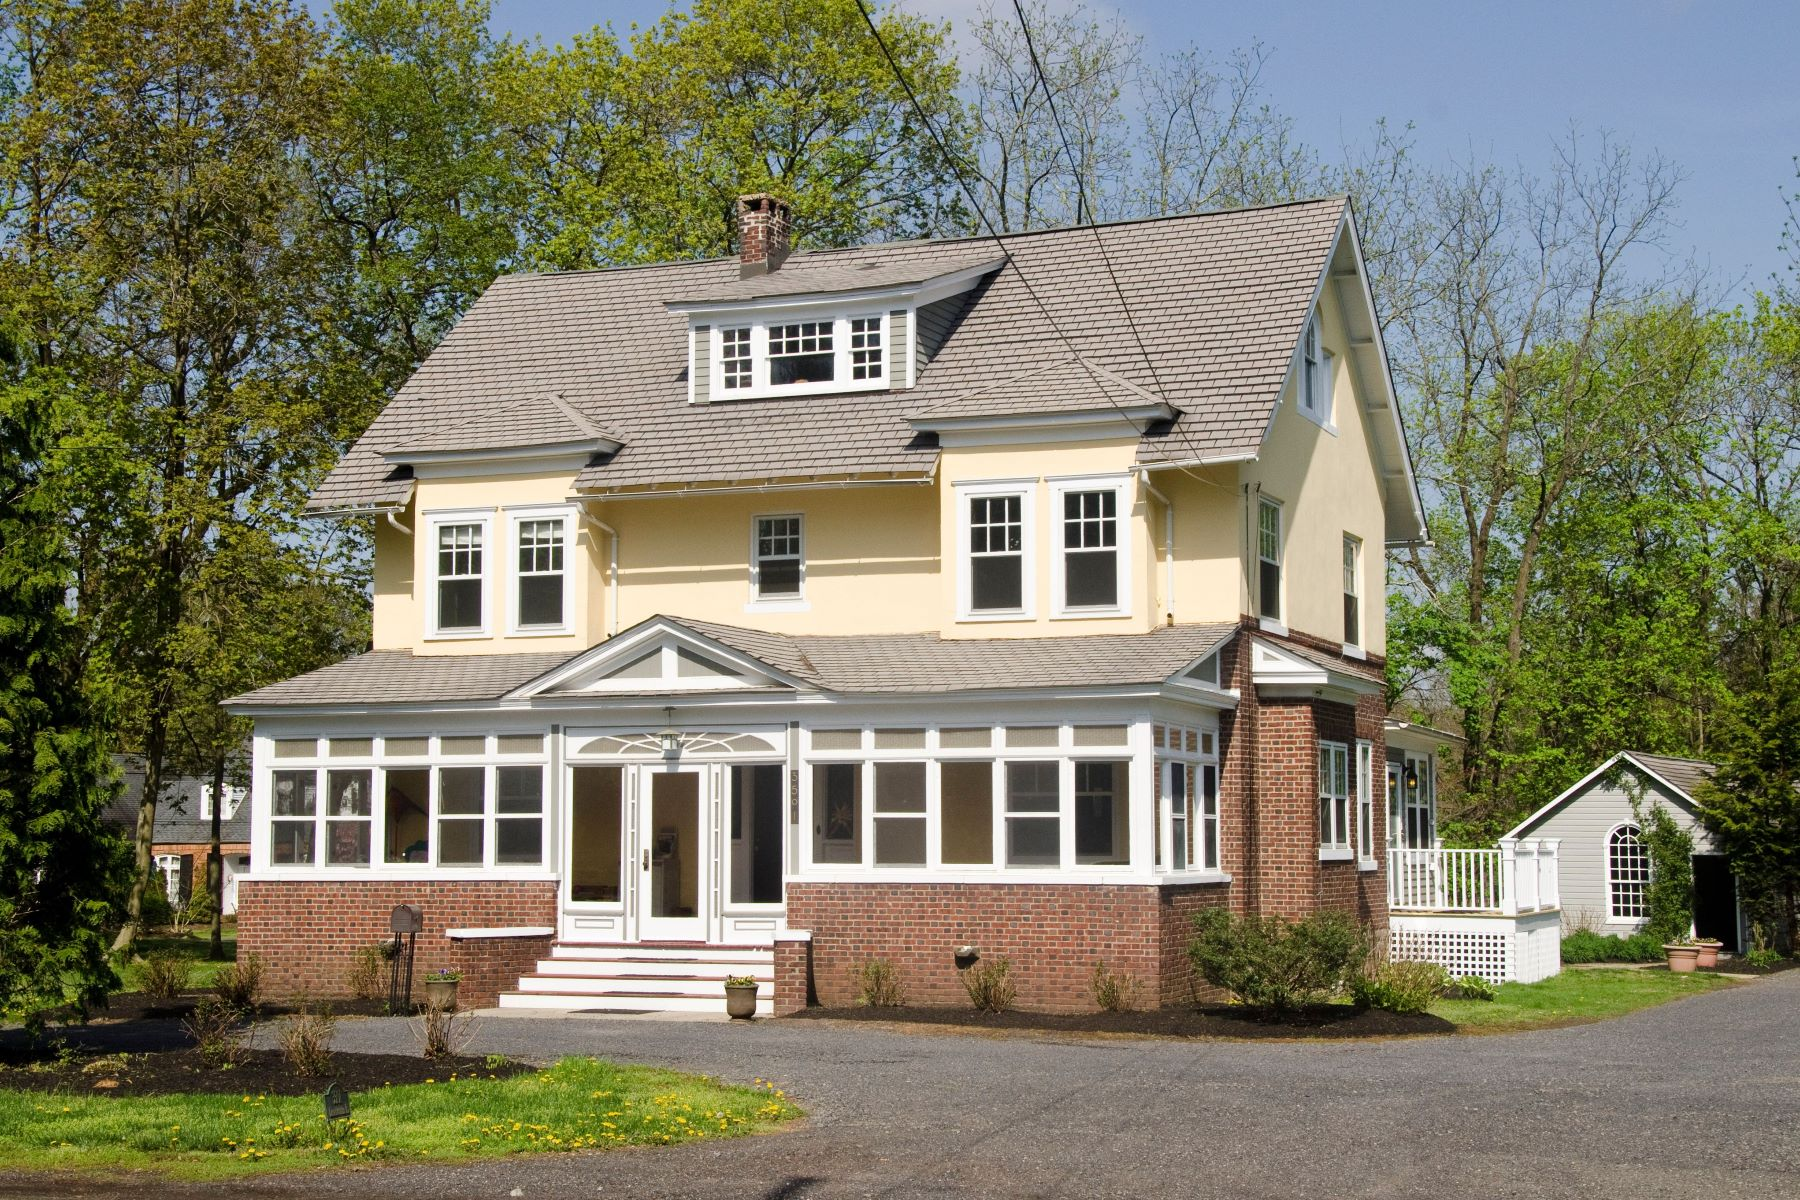 Updated Arts & Crafts 6 bedroom Home Renovated studio w/ full bath, 2-story barn 3501 Lawrenceville Road, Princeton, New Jersey 08540 Hoa Kỳ